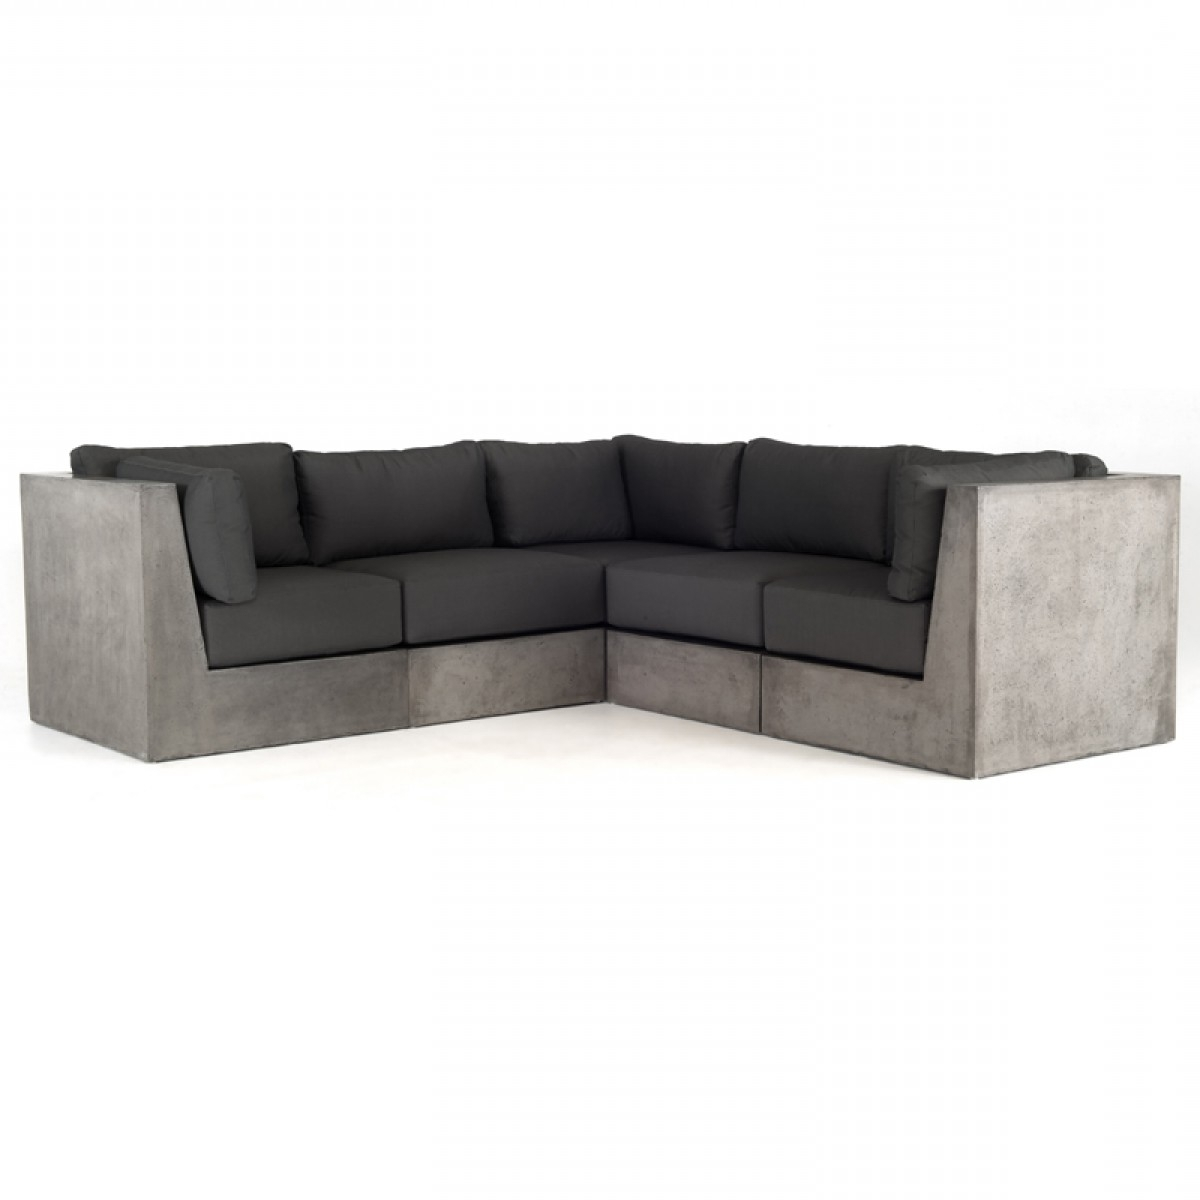 Excellent 20 Best 96X96 Sectional Sofas Inzonedesignstudio Interior Chair Design Inzonedesignstudiocom